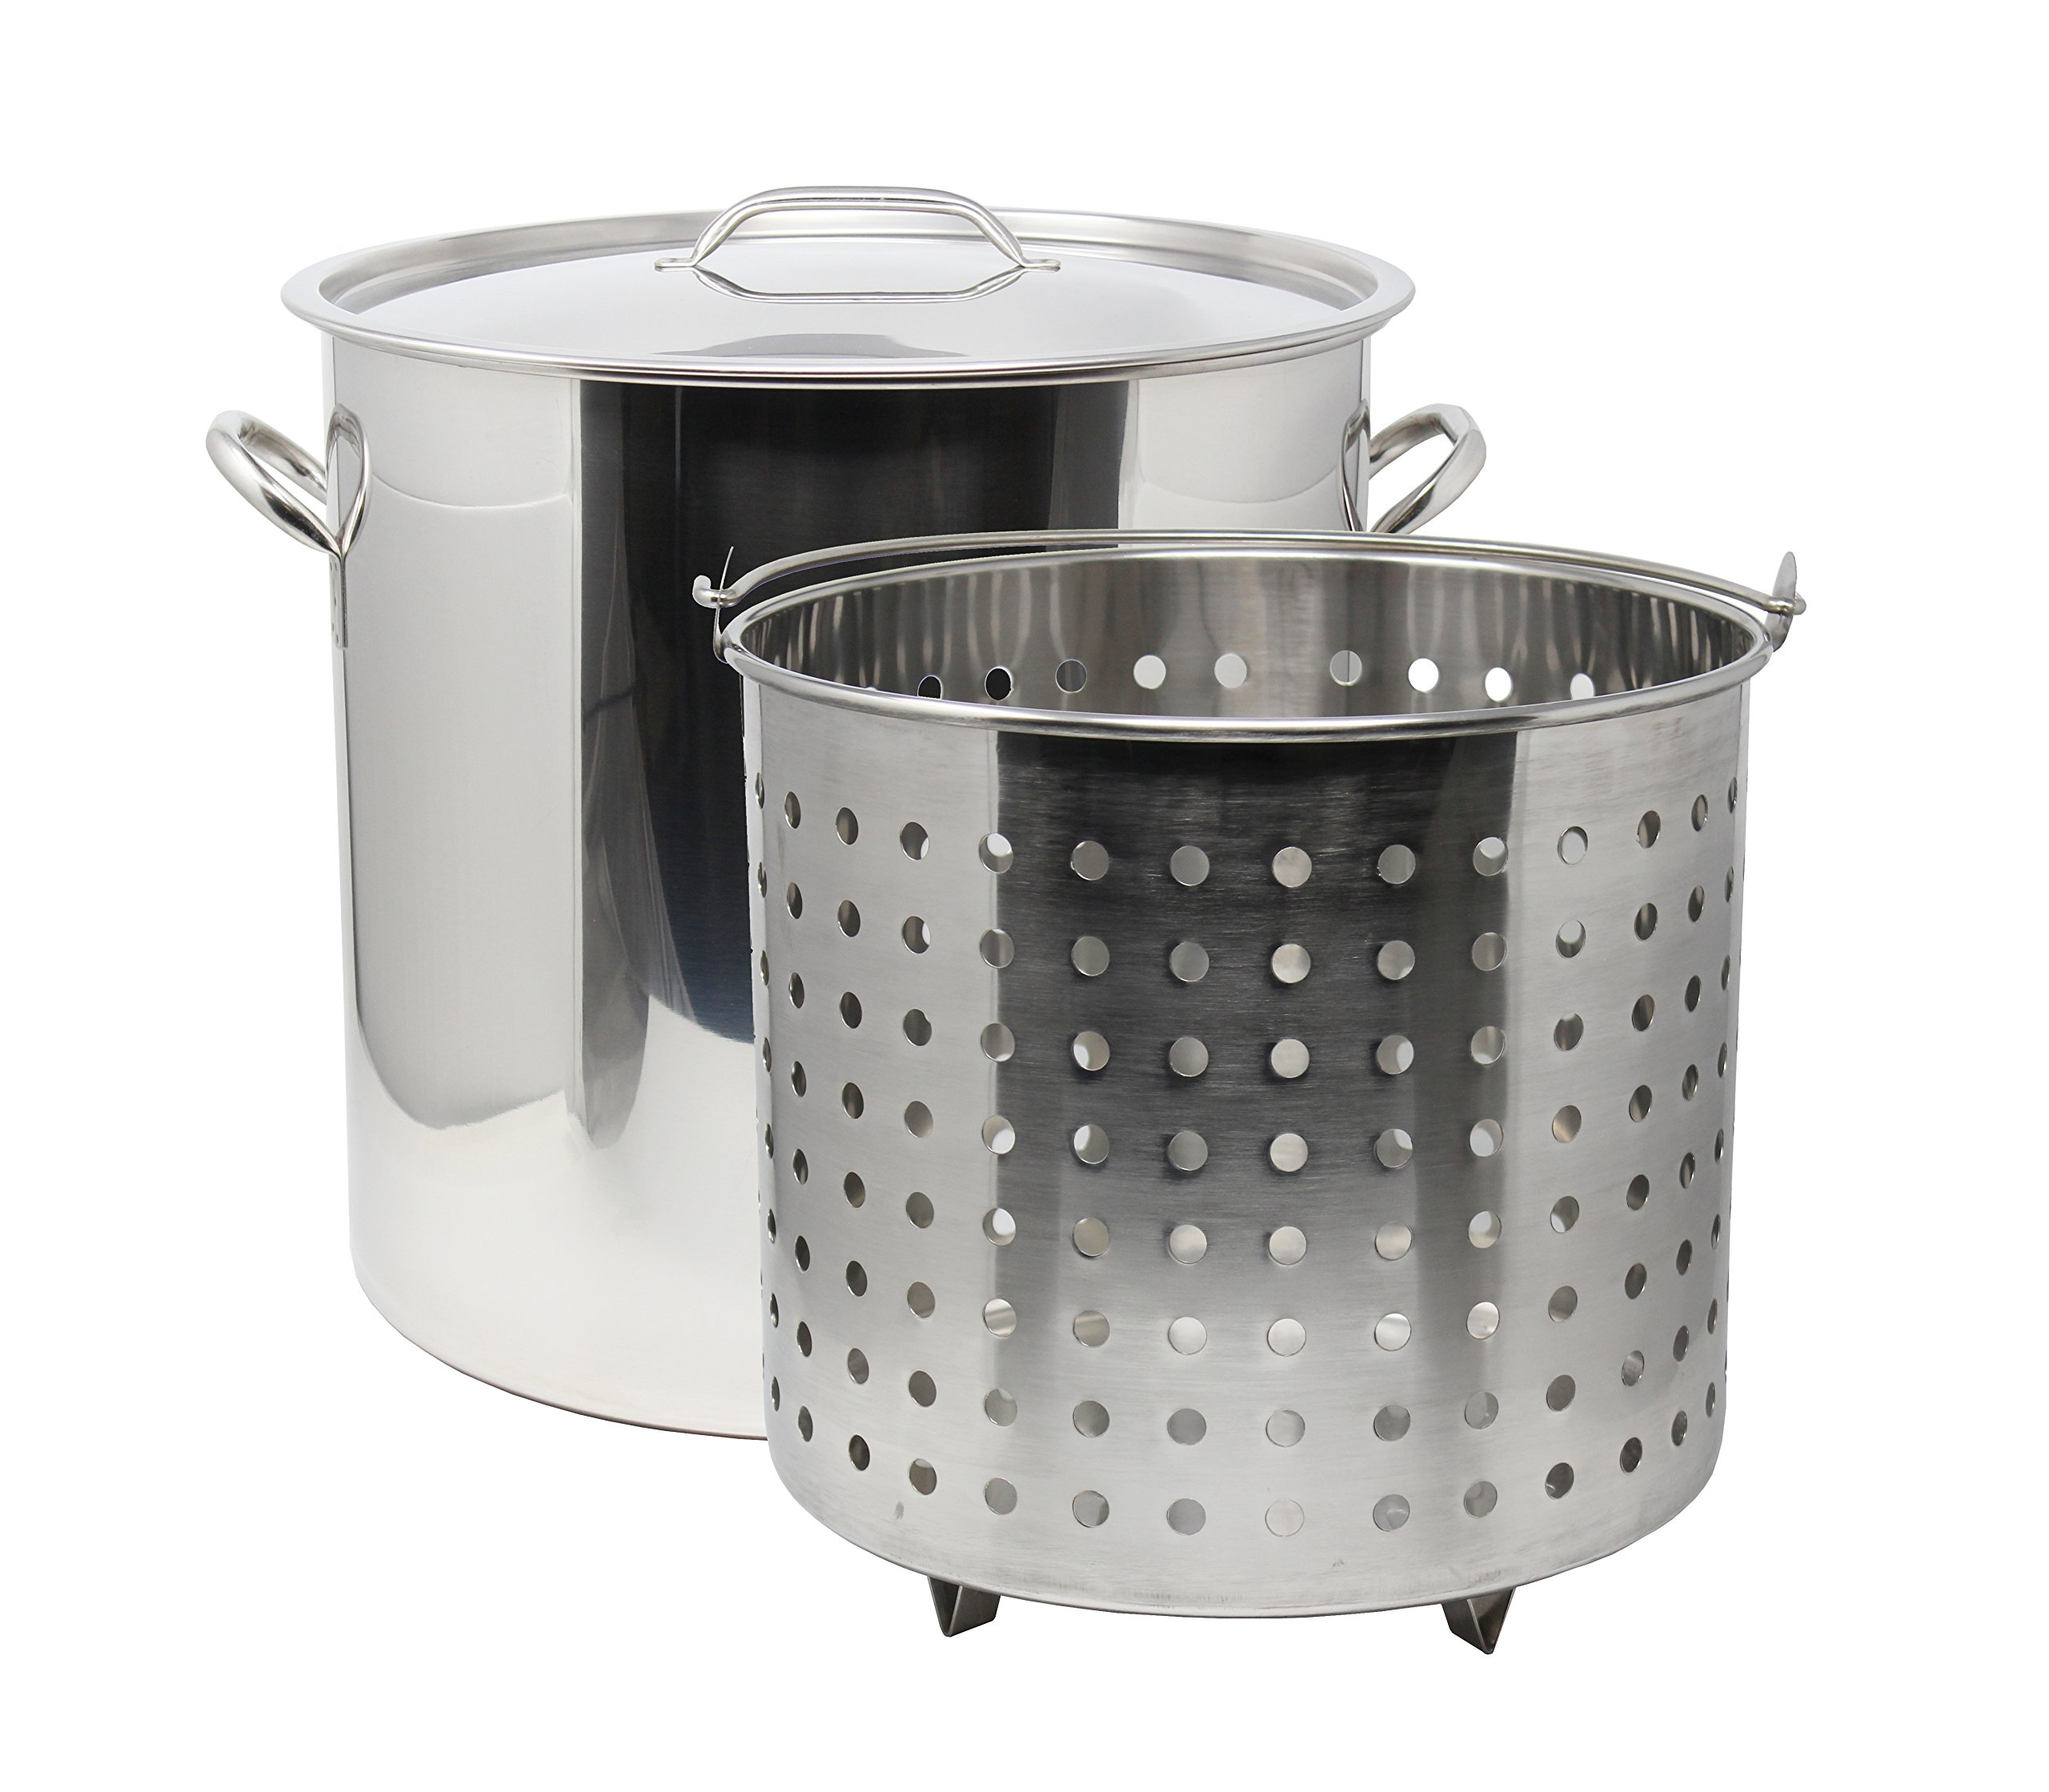 CONCORD 53 QT Stainless Steel Stock Pot w/Basket. Heavy Kettle. Cookware for Boiling by Concord Cookware